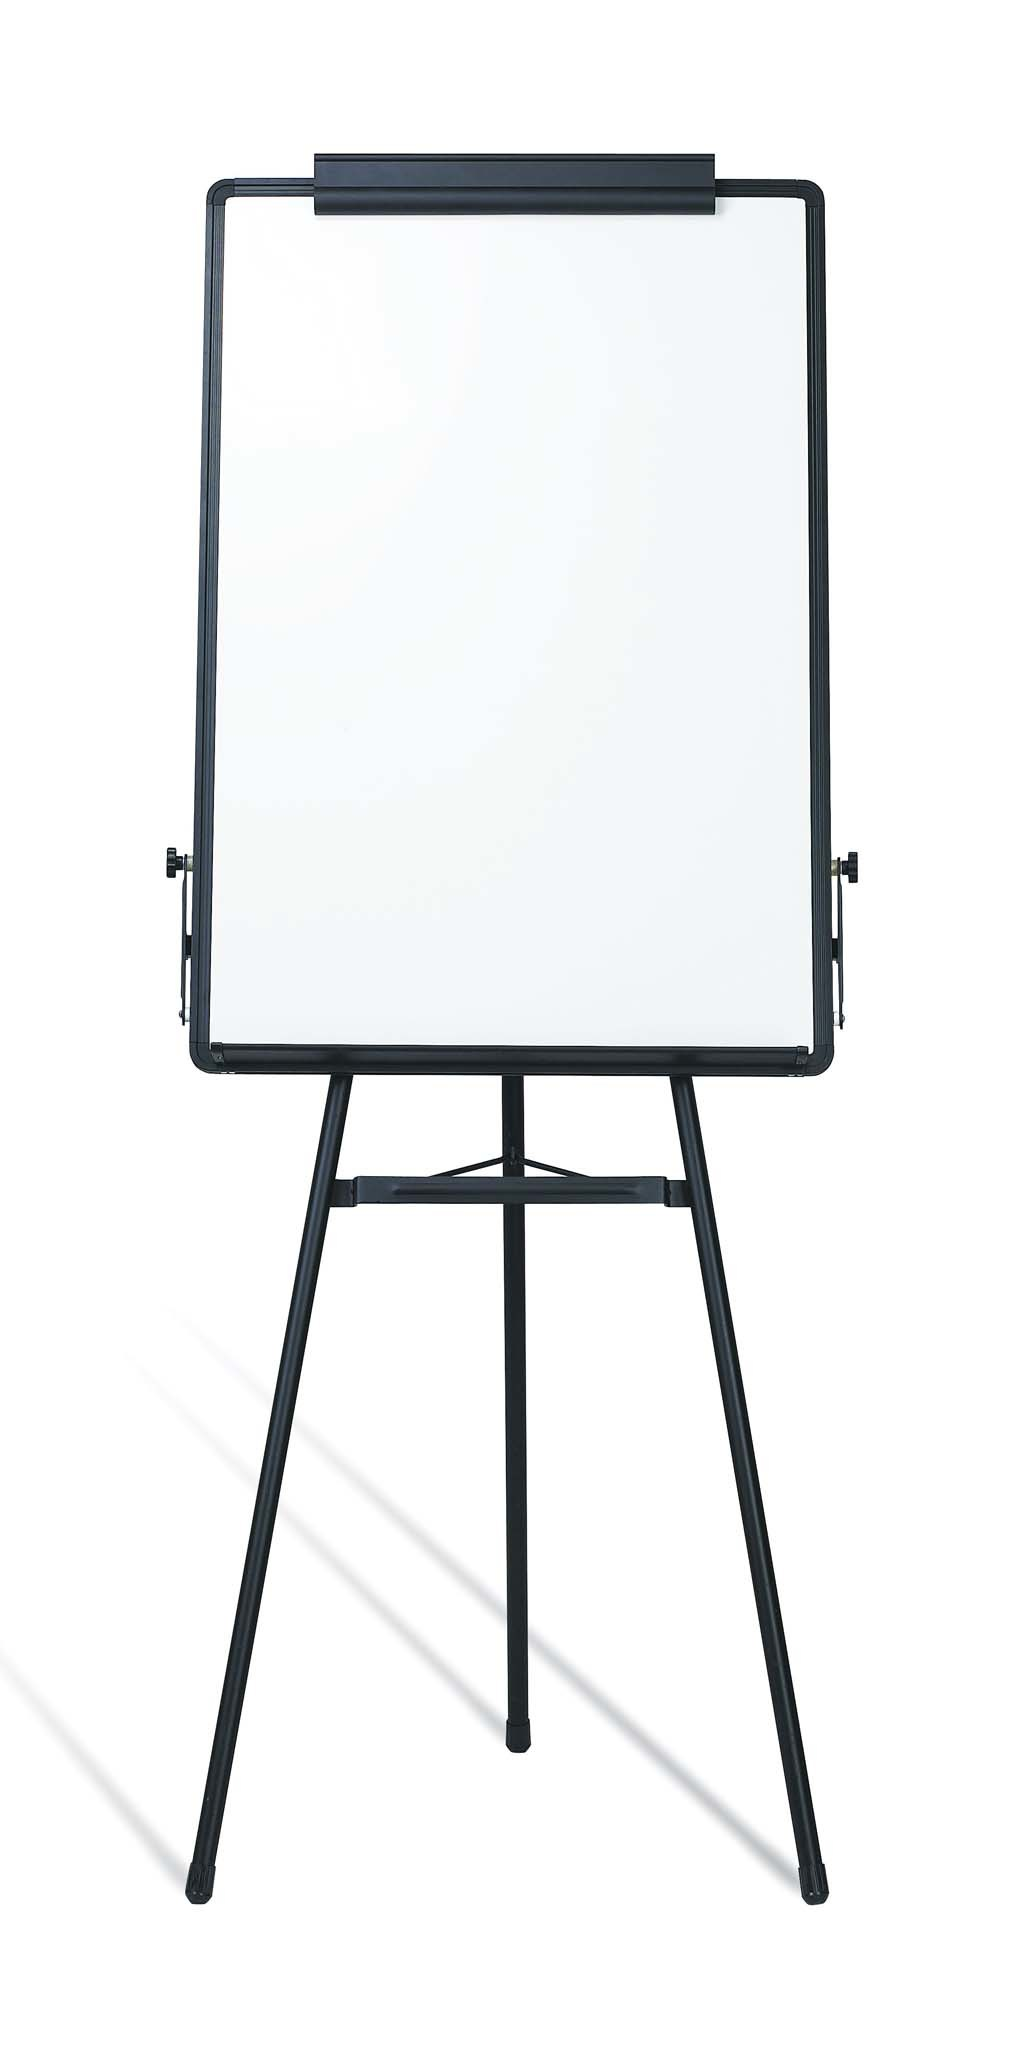 writing board A collaborative online whiteboard for business and education be more productive - have your ideas, sketches, and concepts on any device, anytime, anywhere.